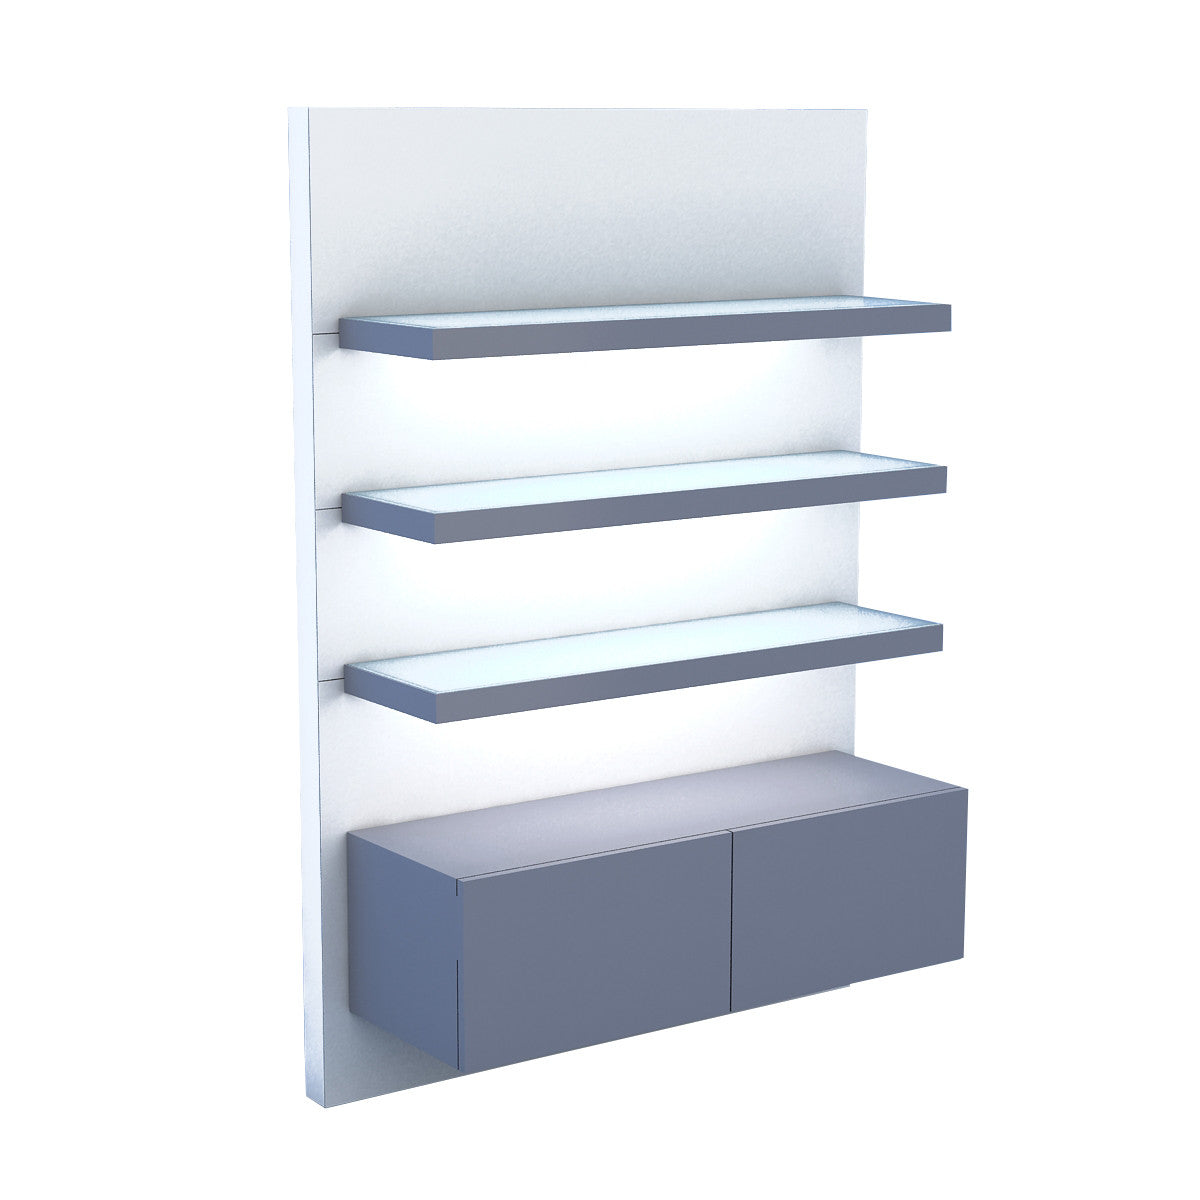 bentley collection 48 wall display touchamerica rh touchamerica com product display wall shelves product display wall shelves